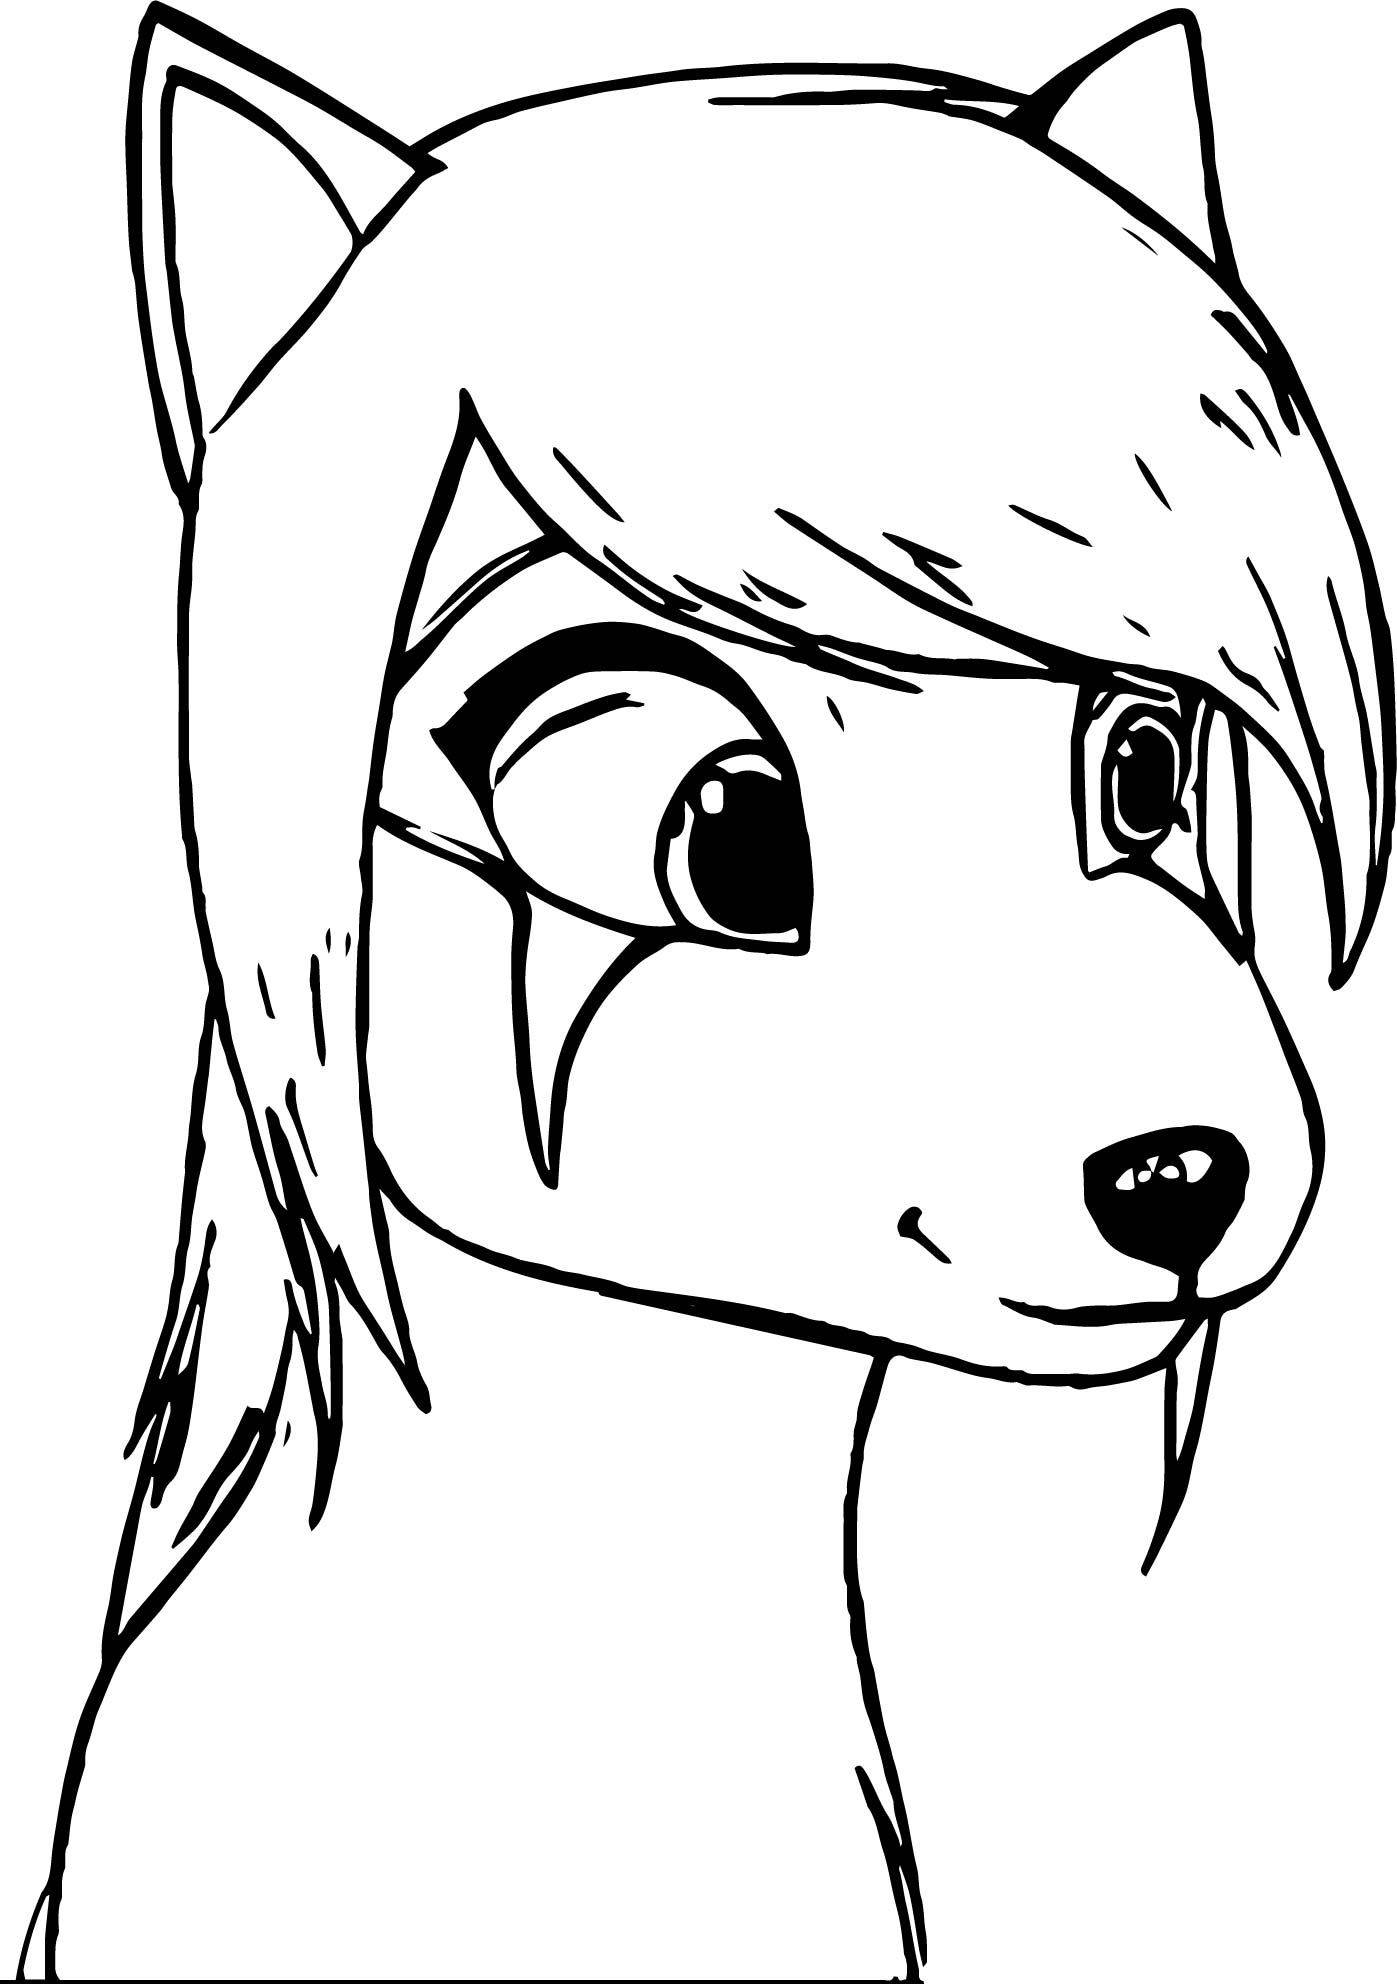 cool Alpha And Omega Oc Ellie Coloring Page | wecoloringpage | Pinterest